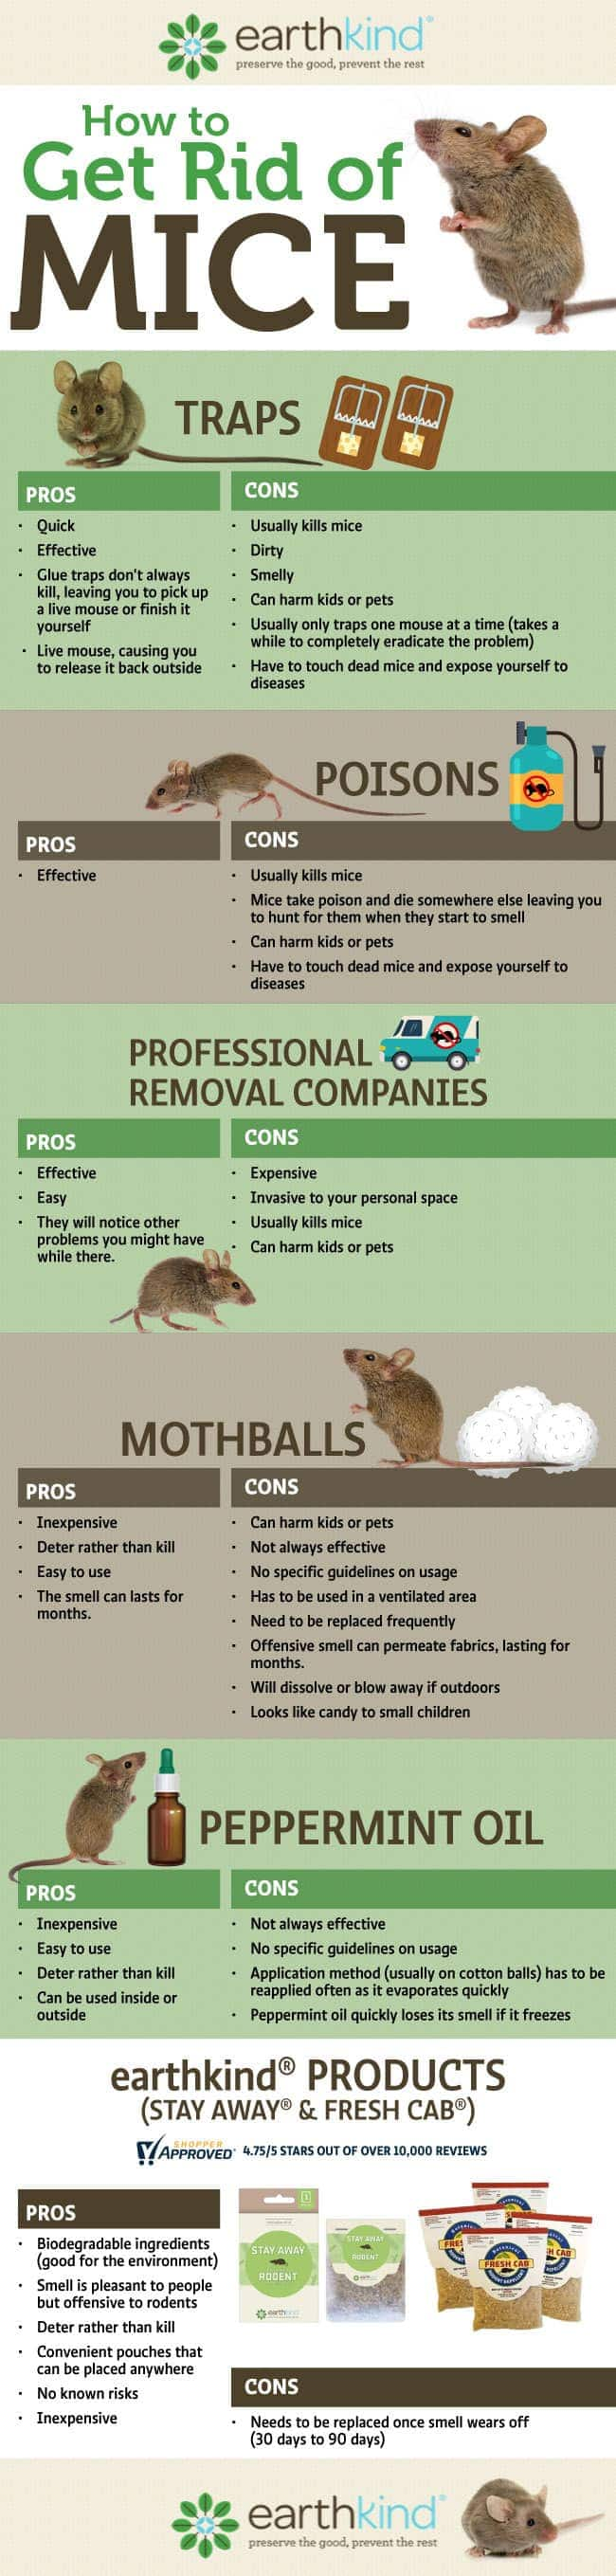 How to Get Rid of Mice Best Botanical Prevention Earthkind